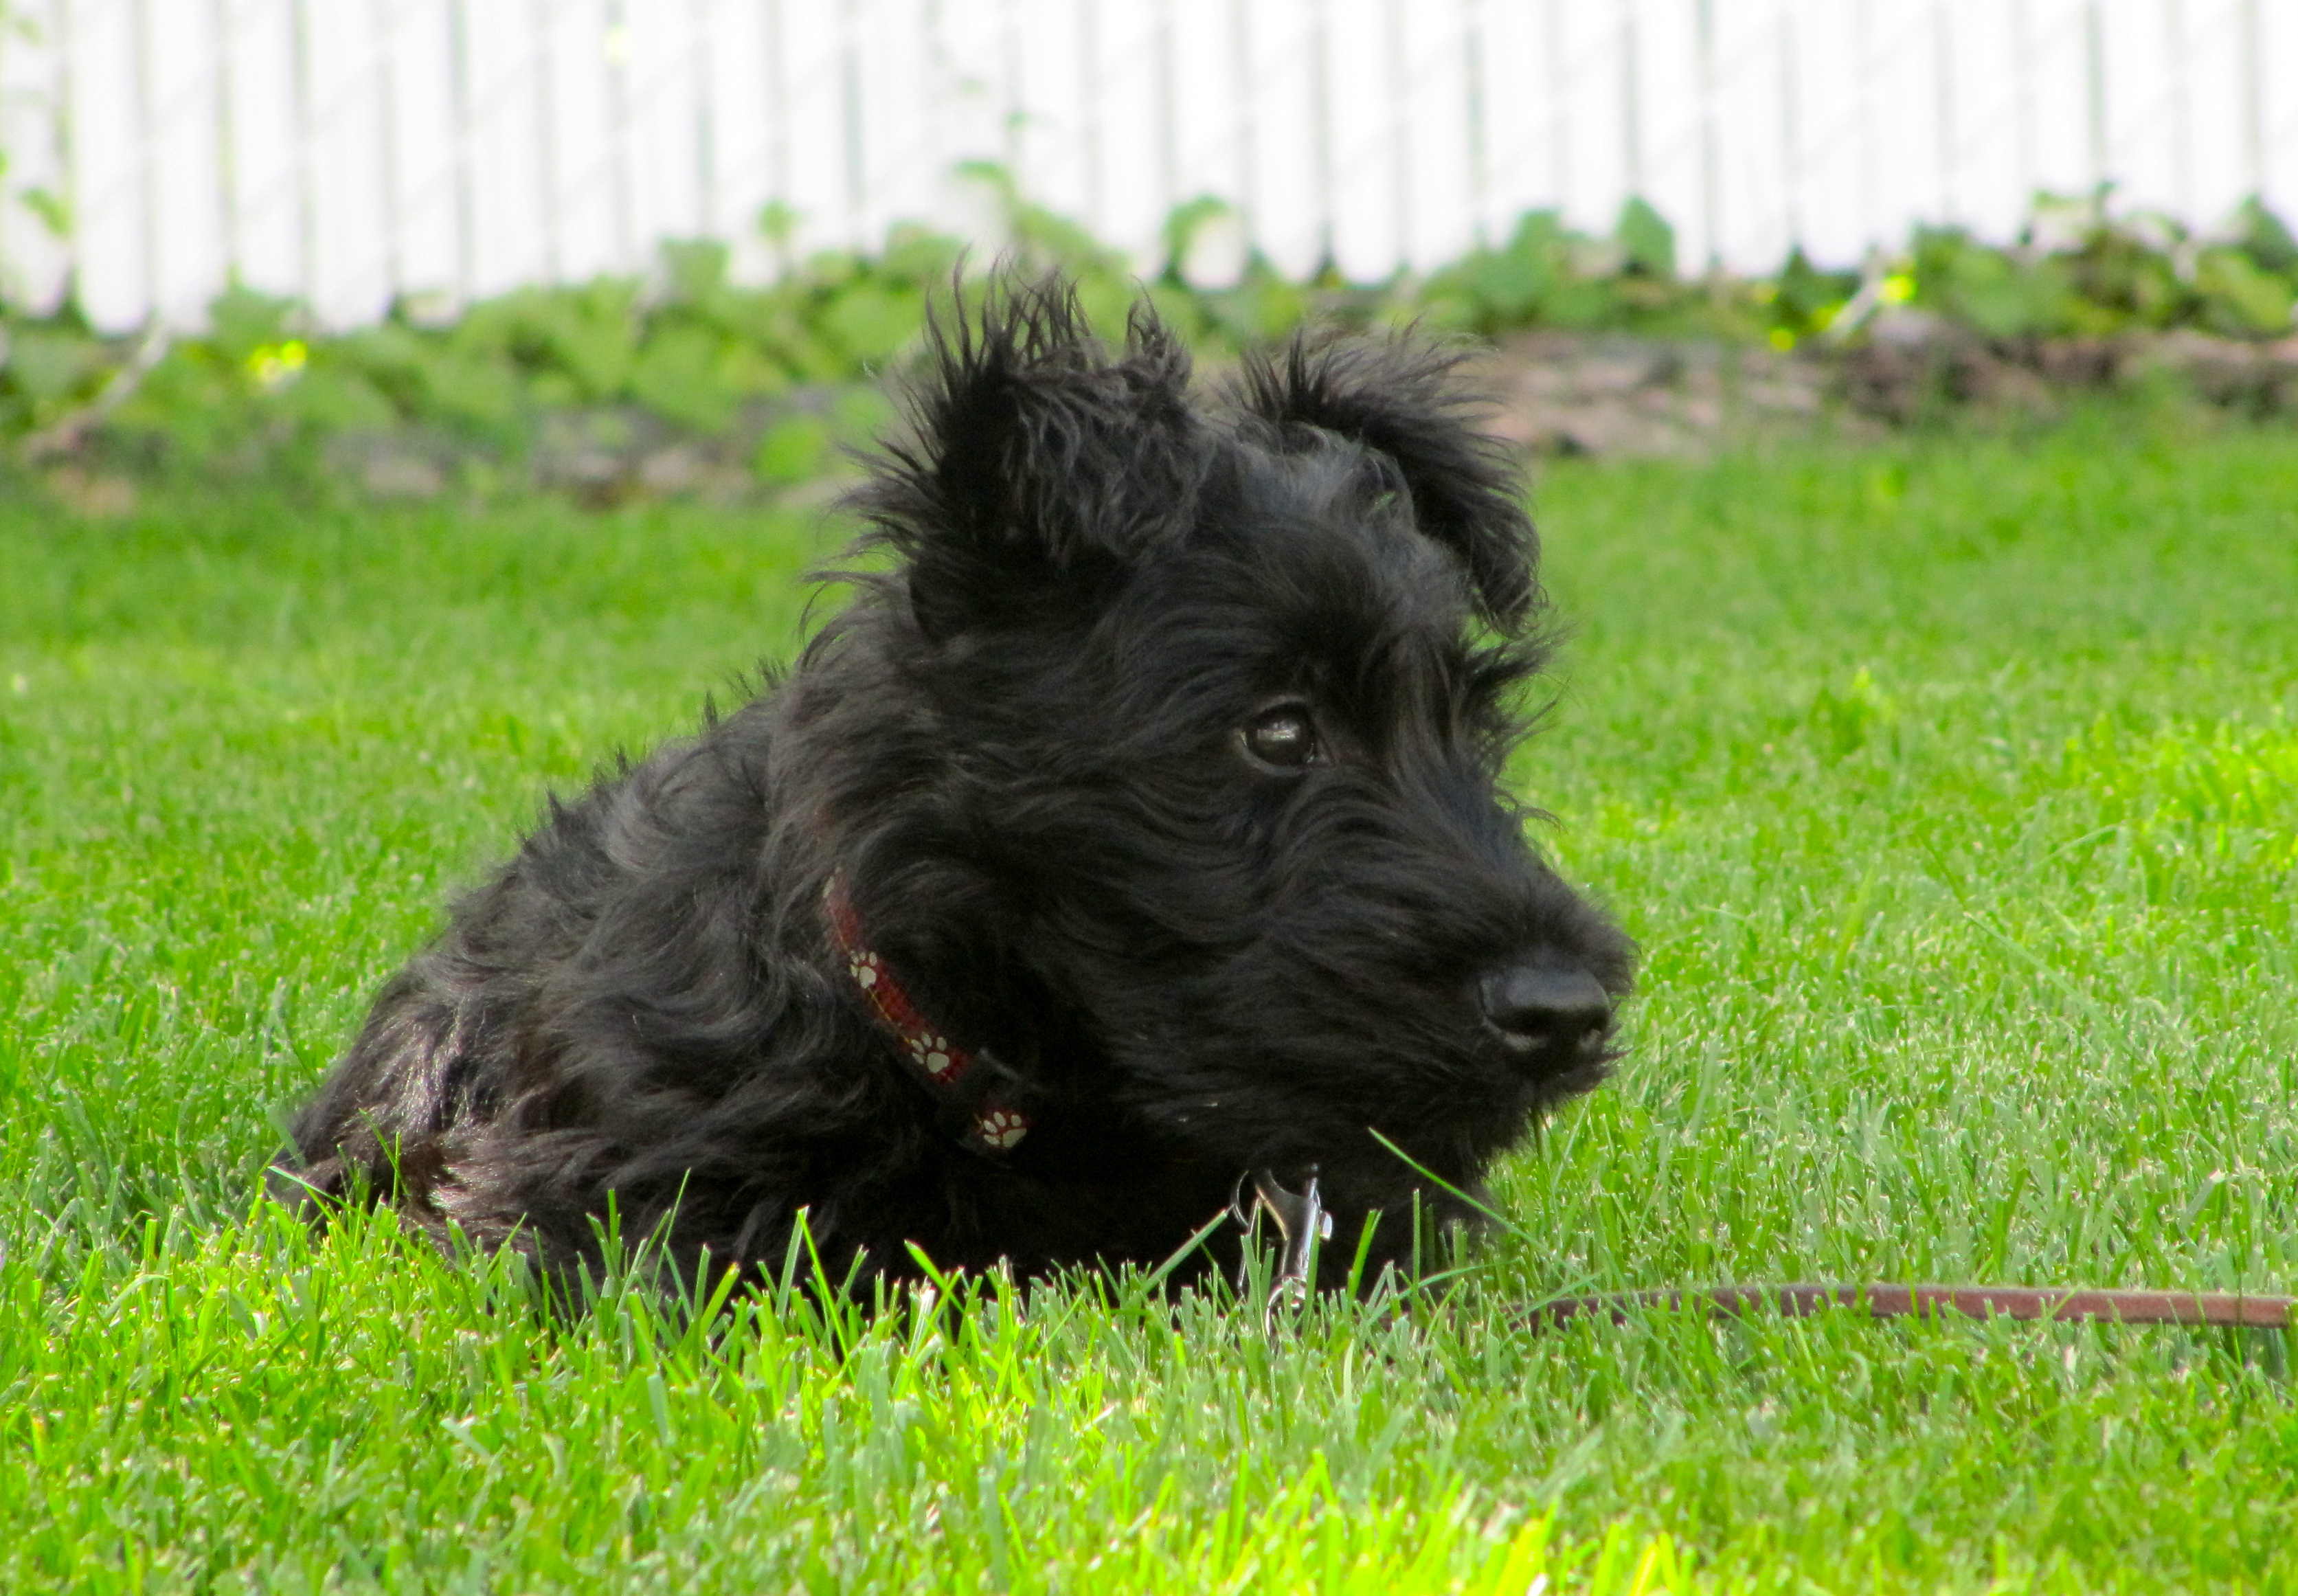 Resting Scottish Terrier dog wallpaper